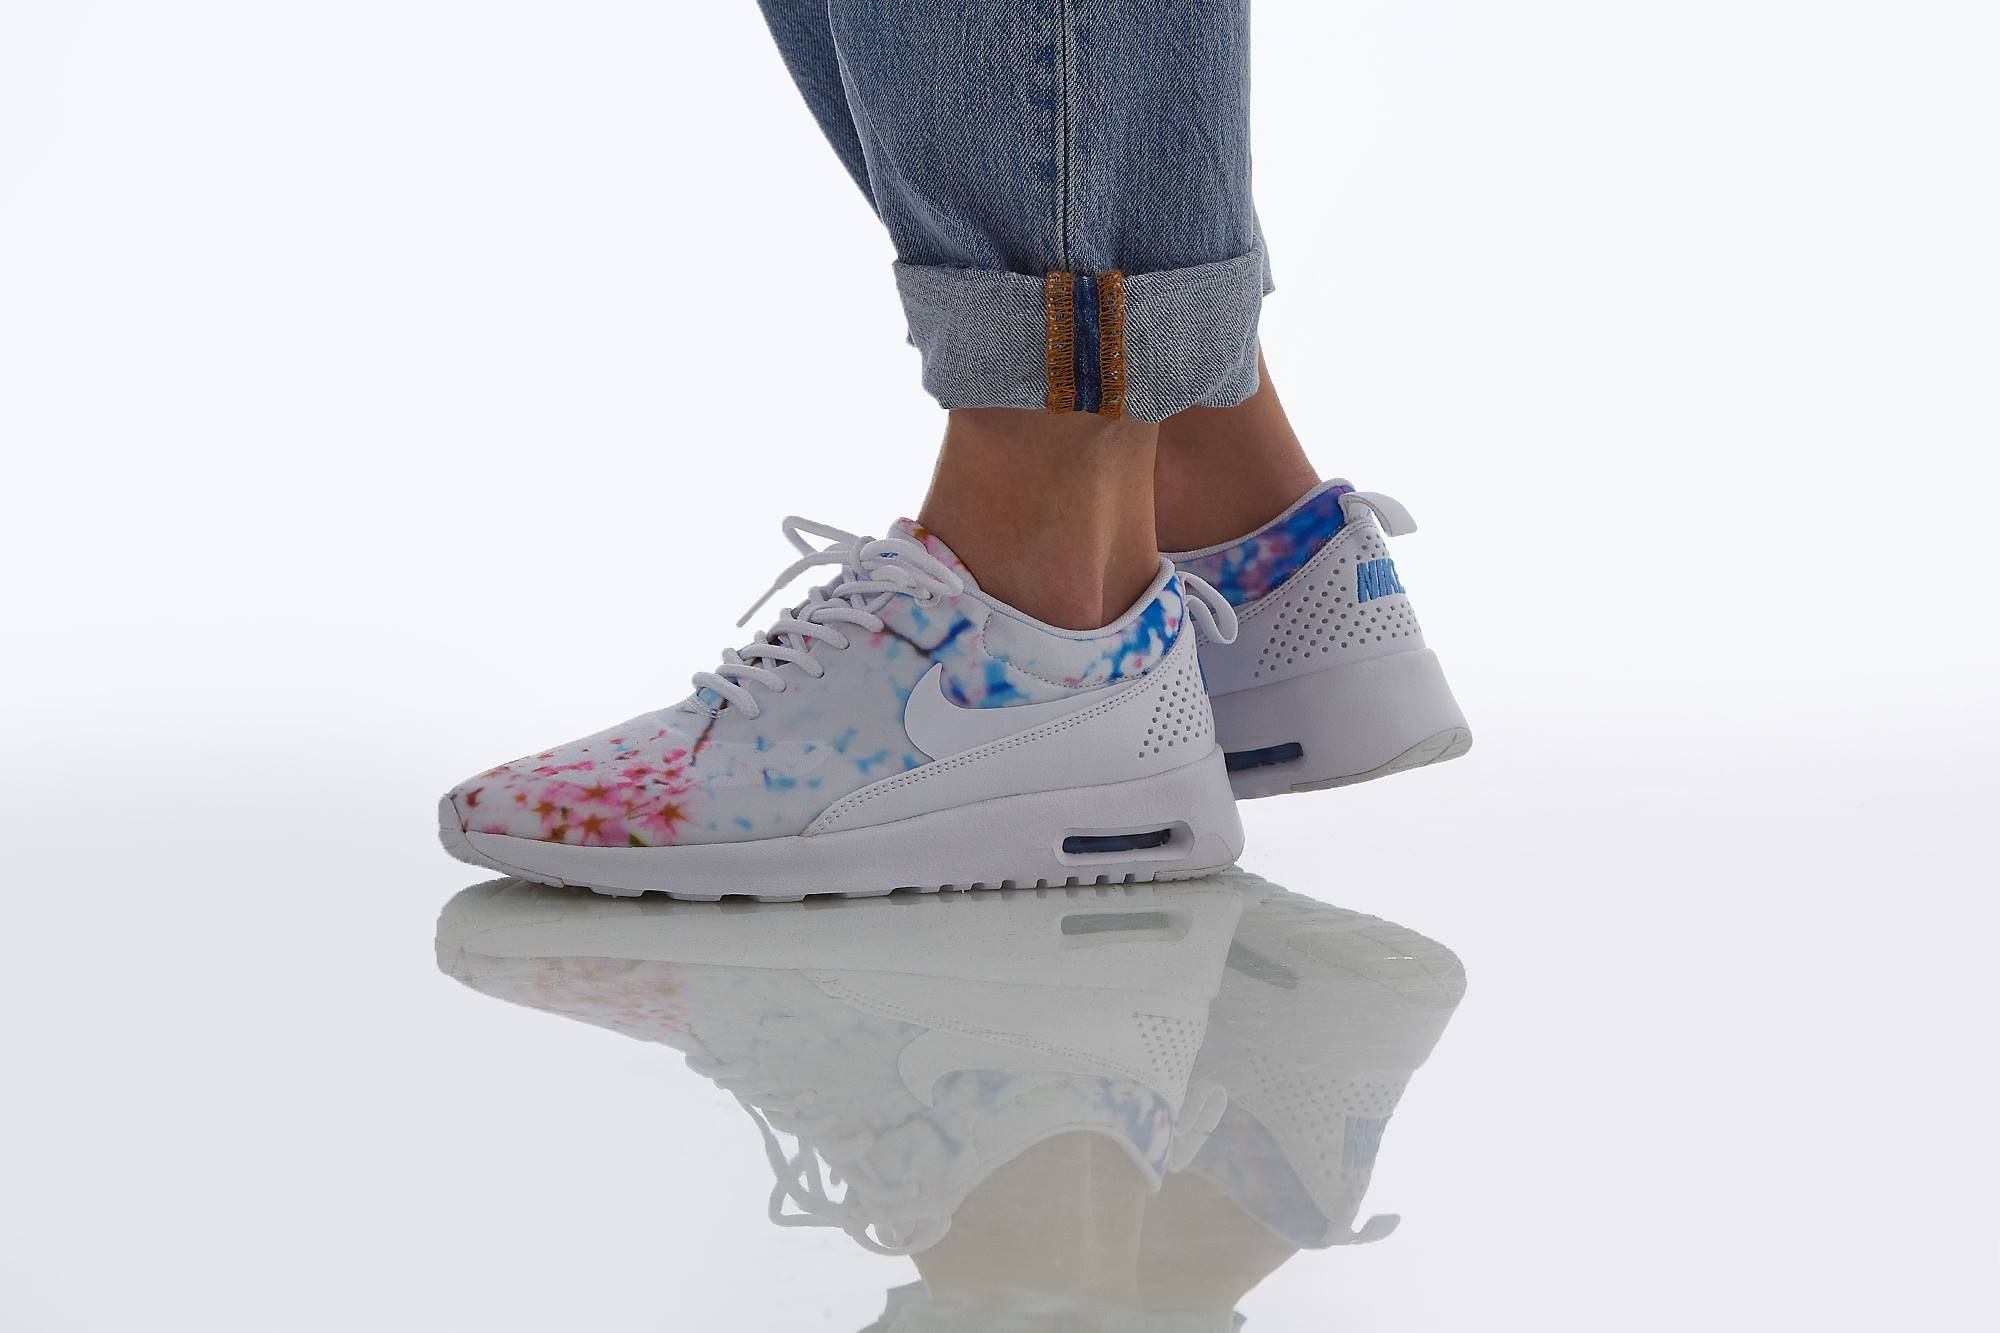 Nike Wmns Air Max Thea Print White White University (Cherry Blossom) | Footshop